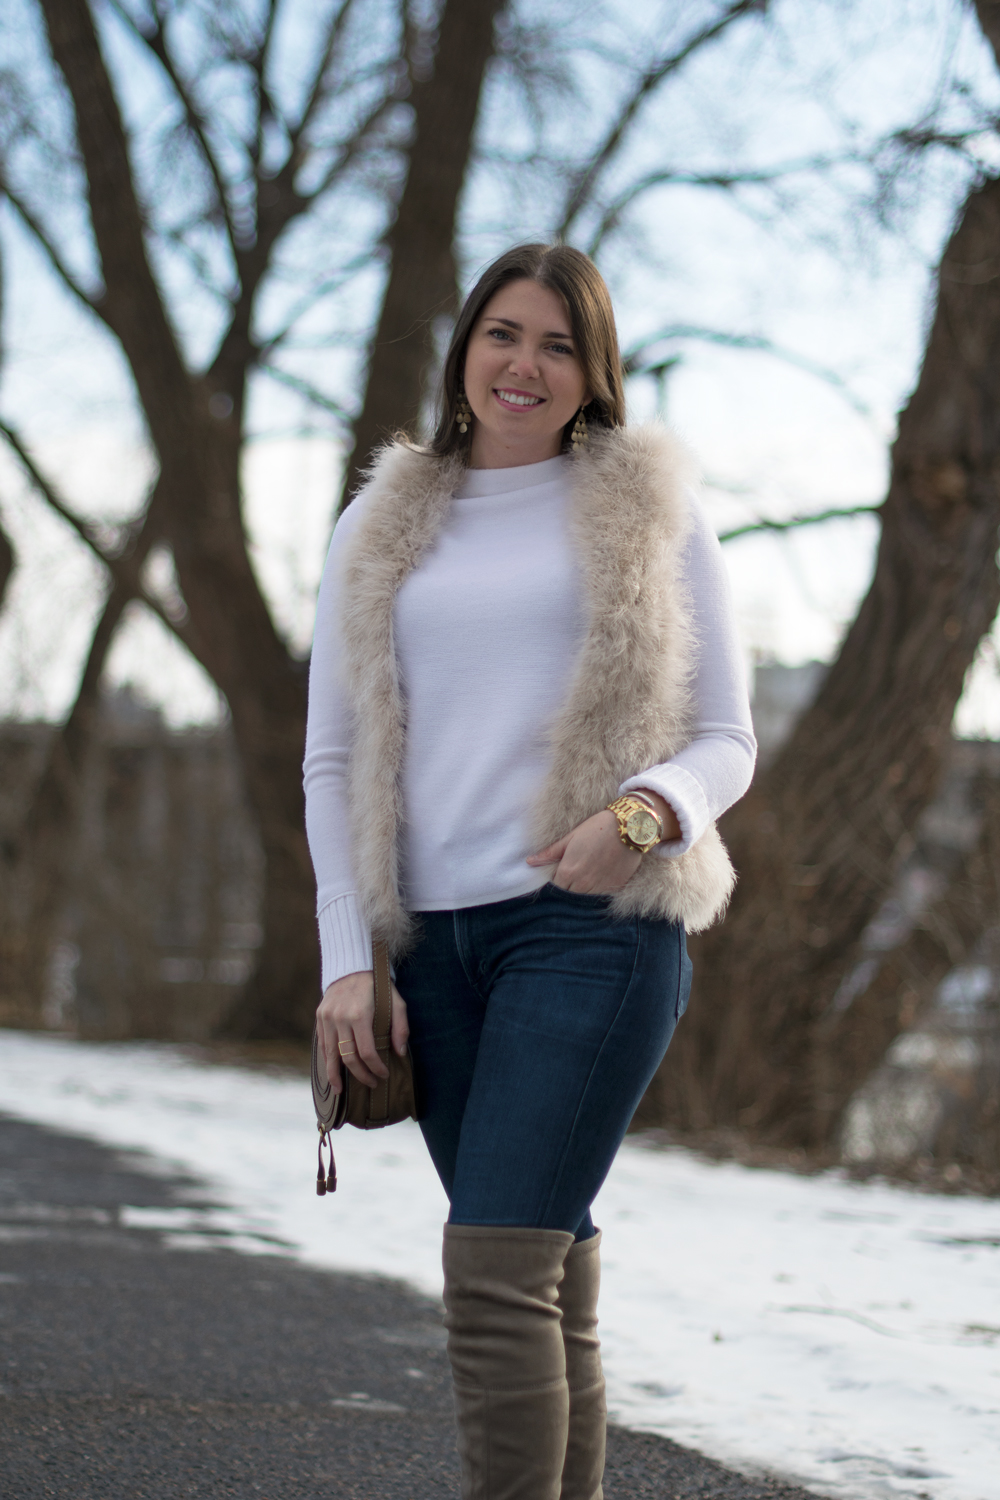 White feather vest with chic outfit.